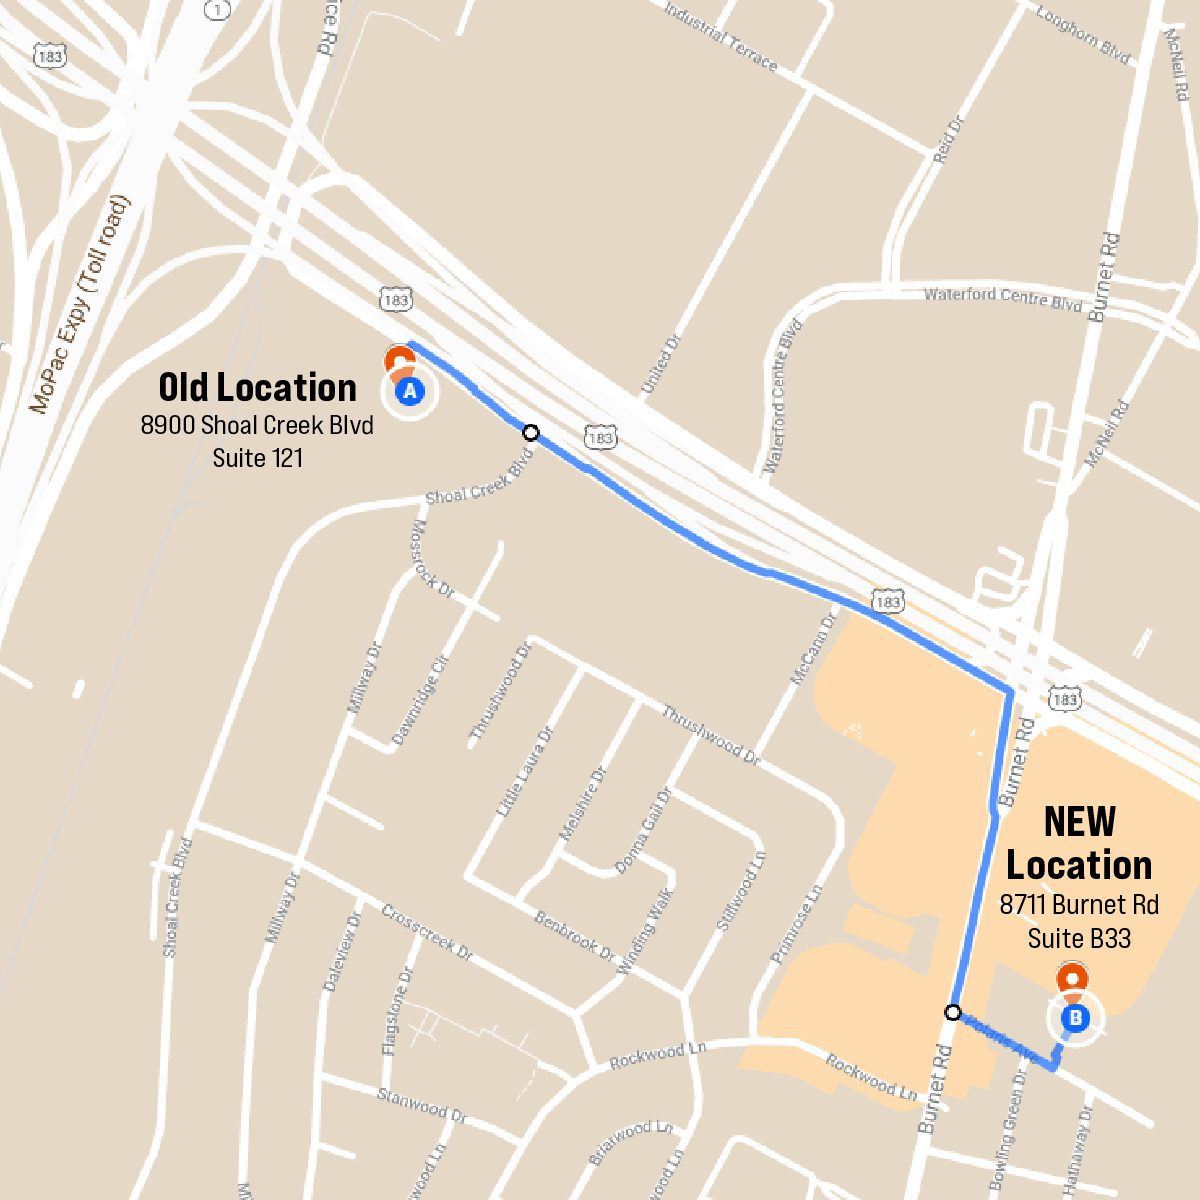 New Location_Route Map